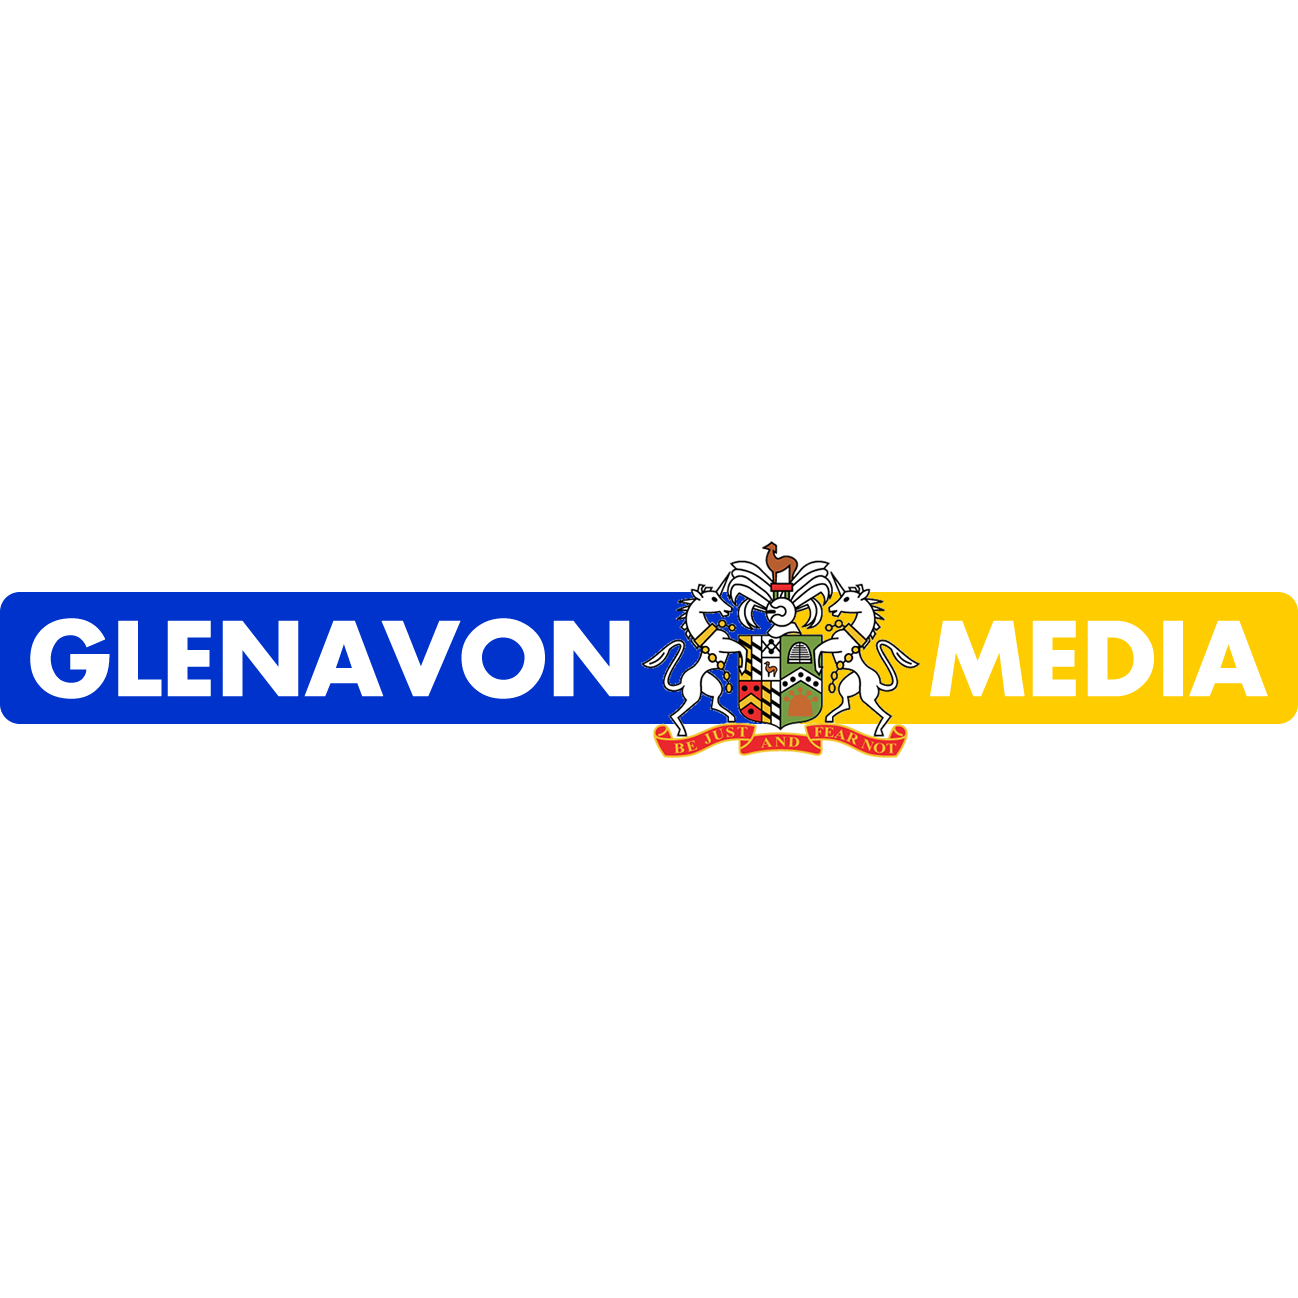 Watch Glenavon live for a fiver for the rest of the season!